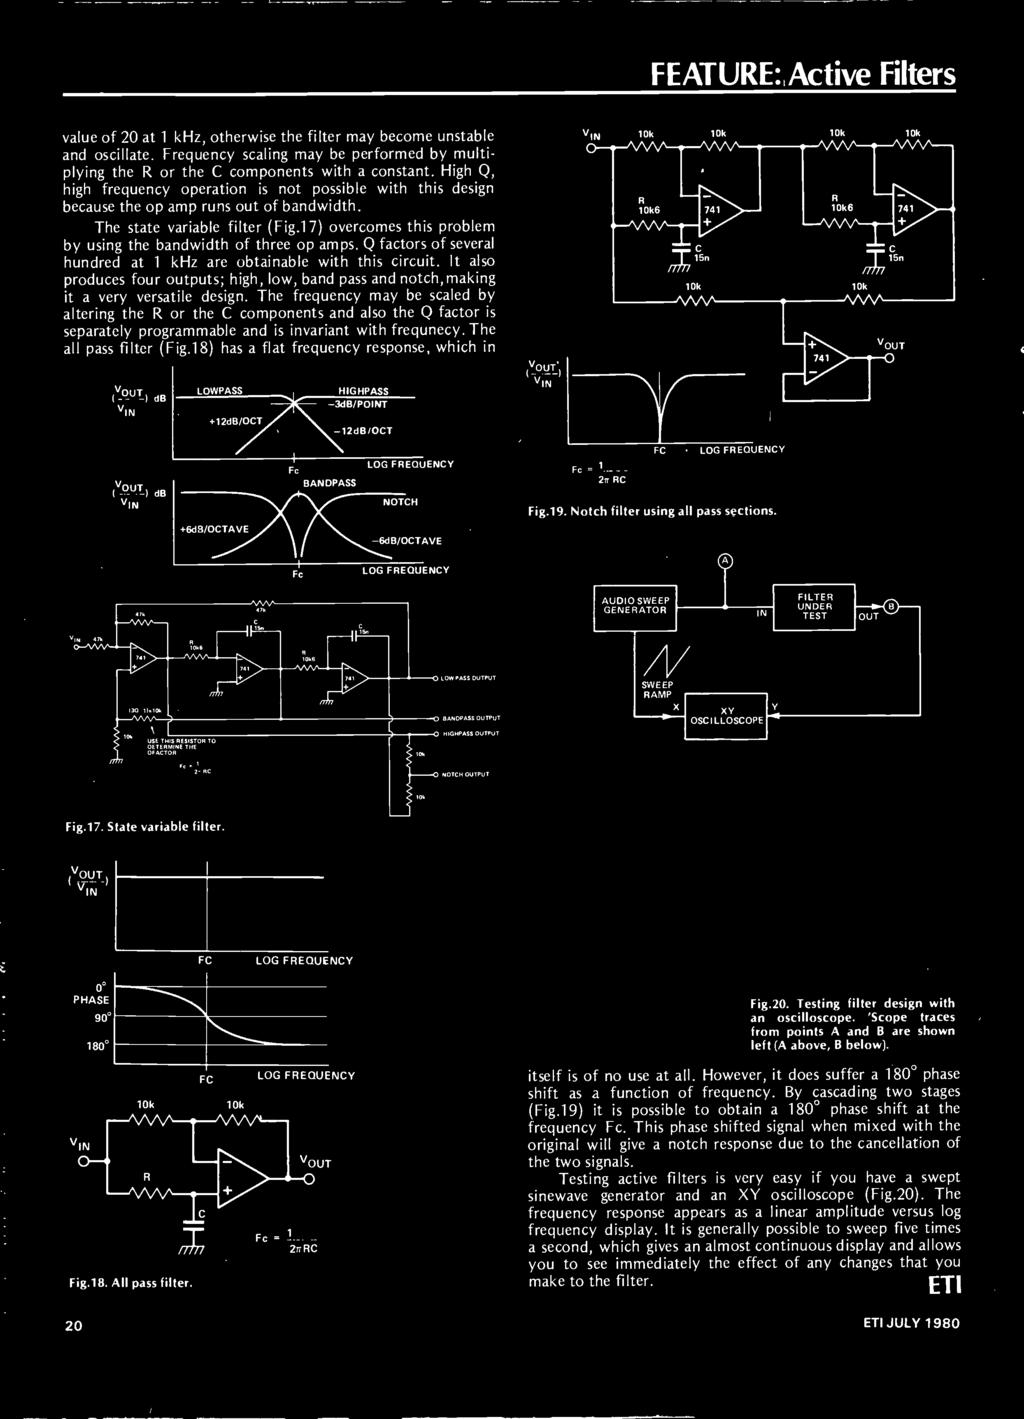 Stereo Spacecraft History Of Image Co Ordinator Active Filters Low Pass Filter Integrator Circuit Using Op Amp 741 Circuits Gallery The Frequency May Be Scaled By Altering R Or C Components And Also